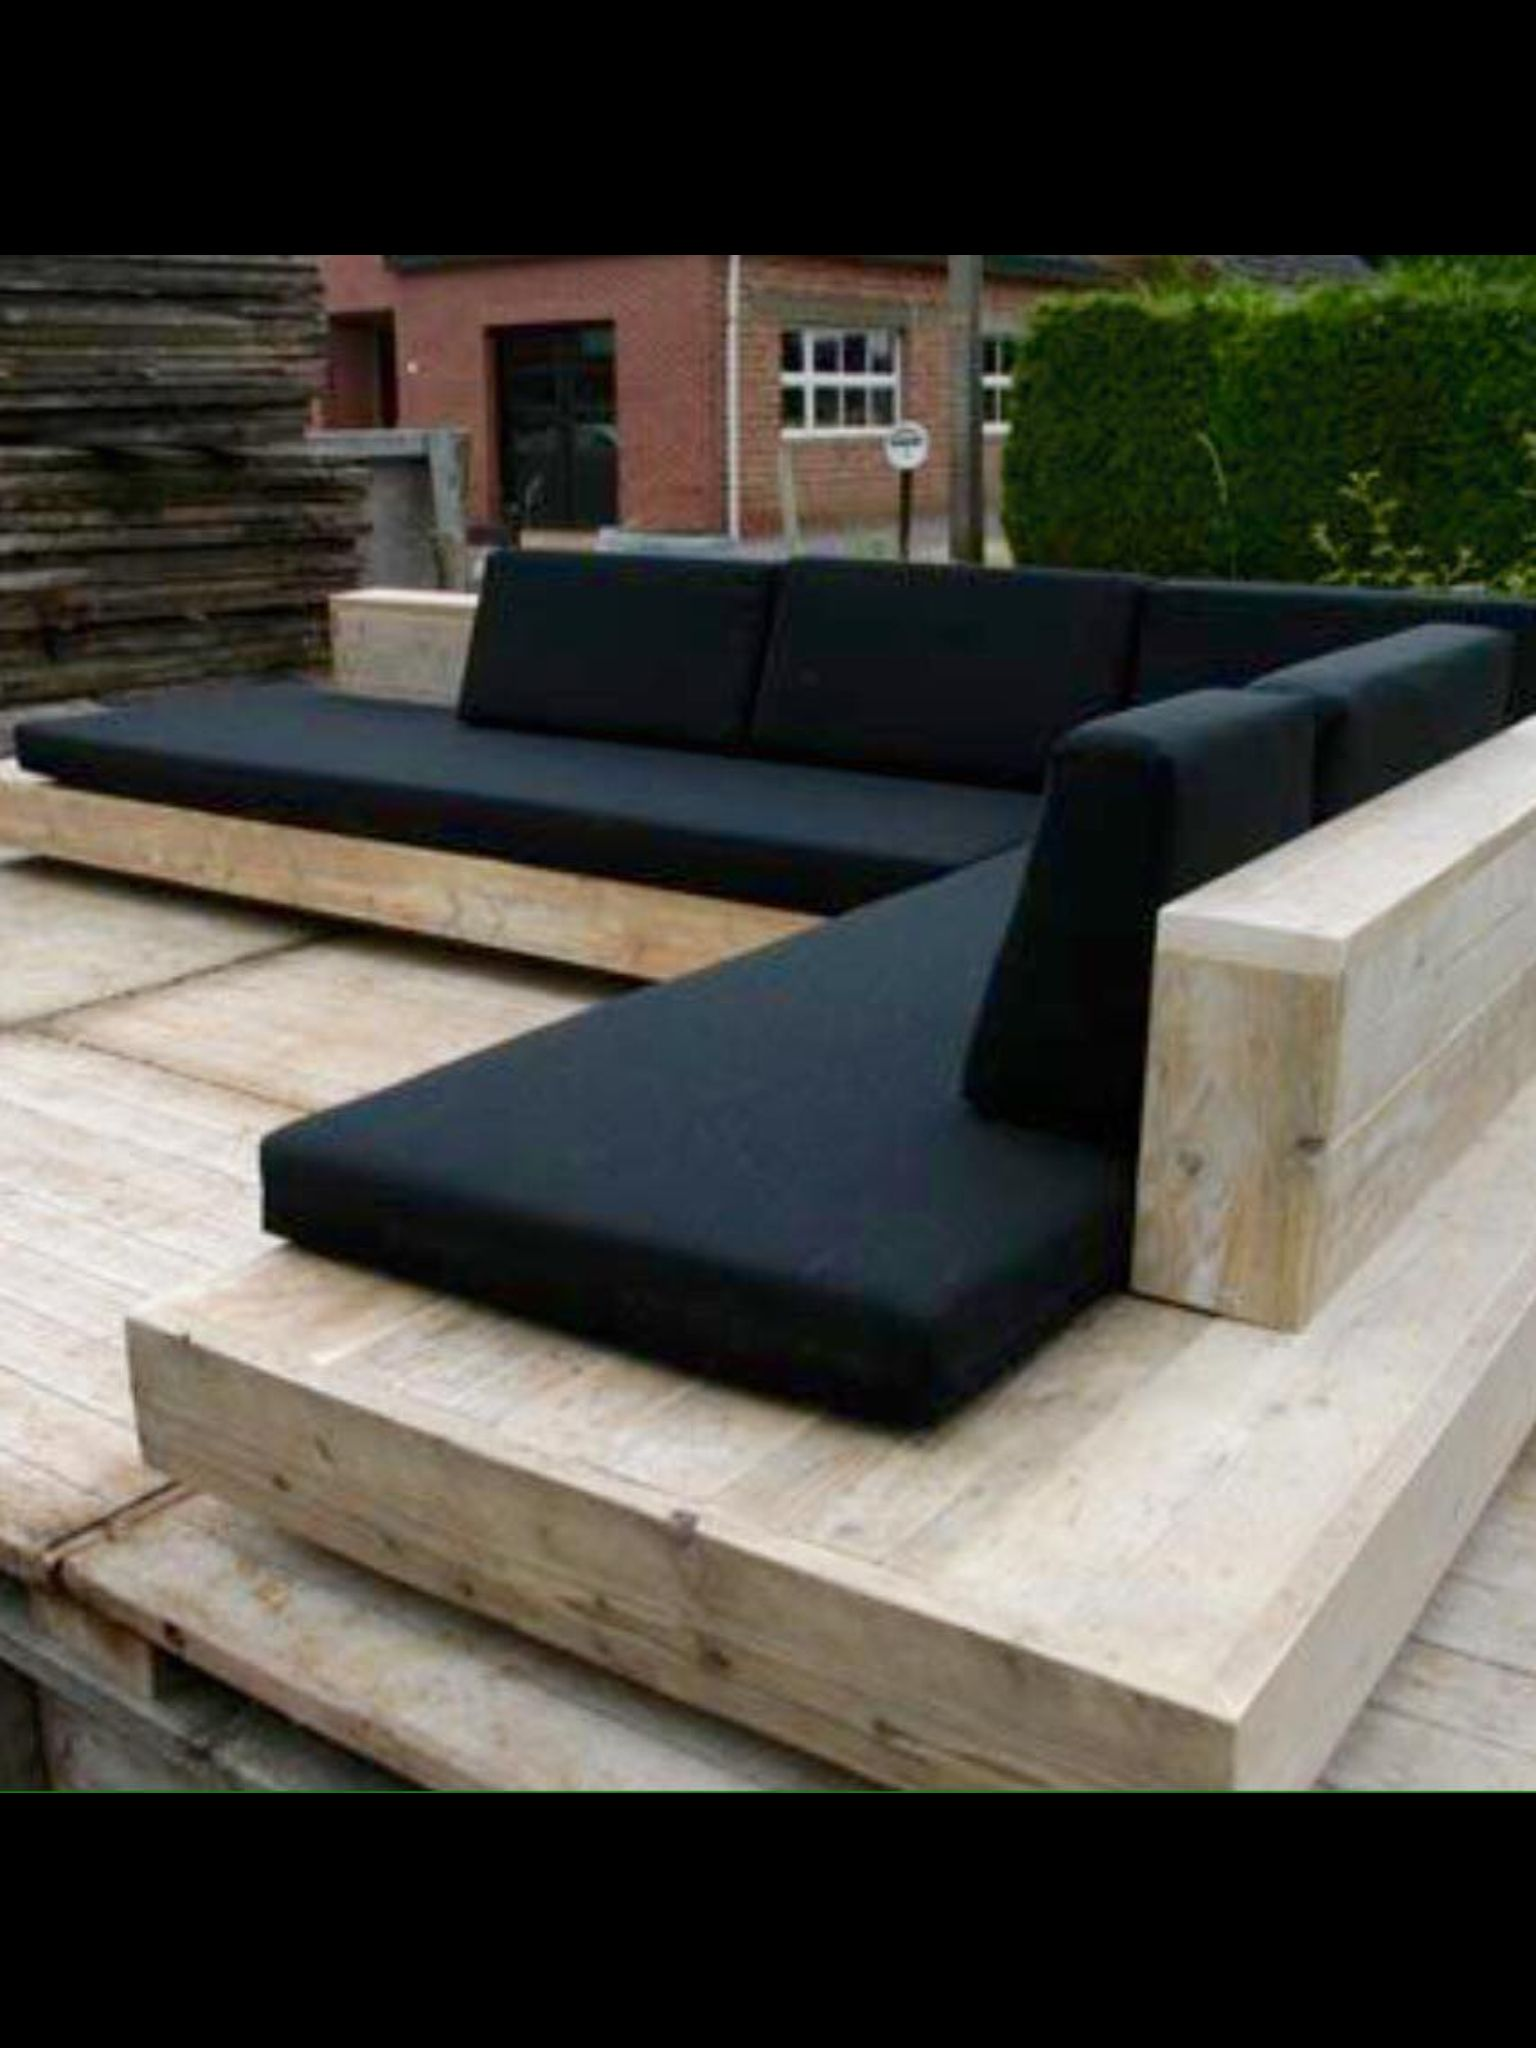 L Shaped Seating Around Fire Pit Outdoor Sectional Sofa Pieces A